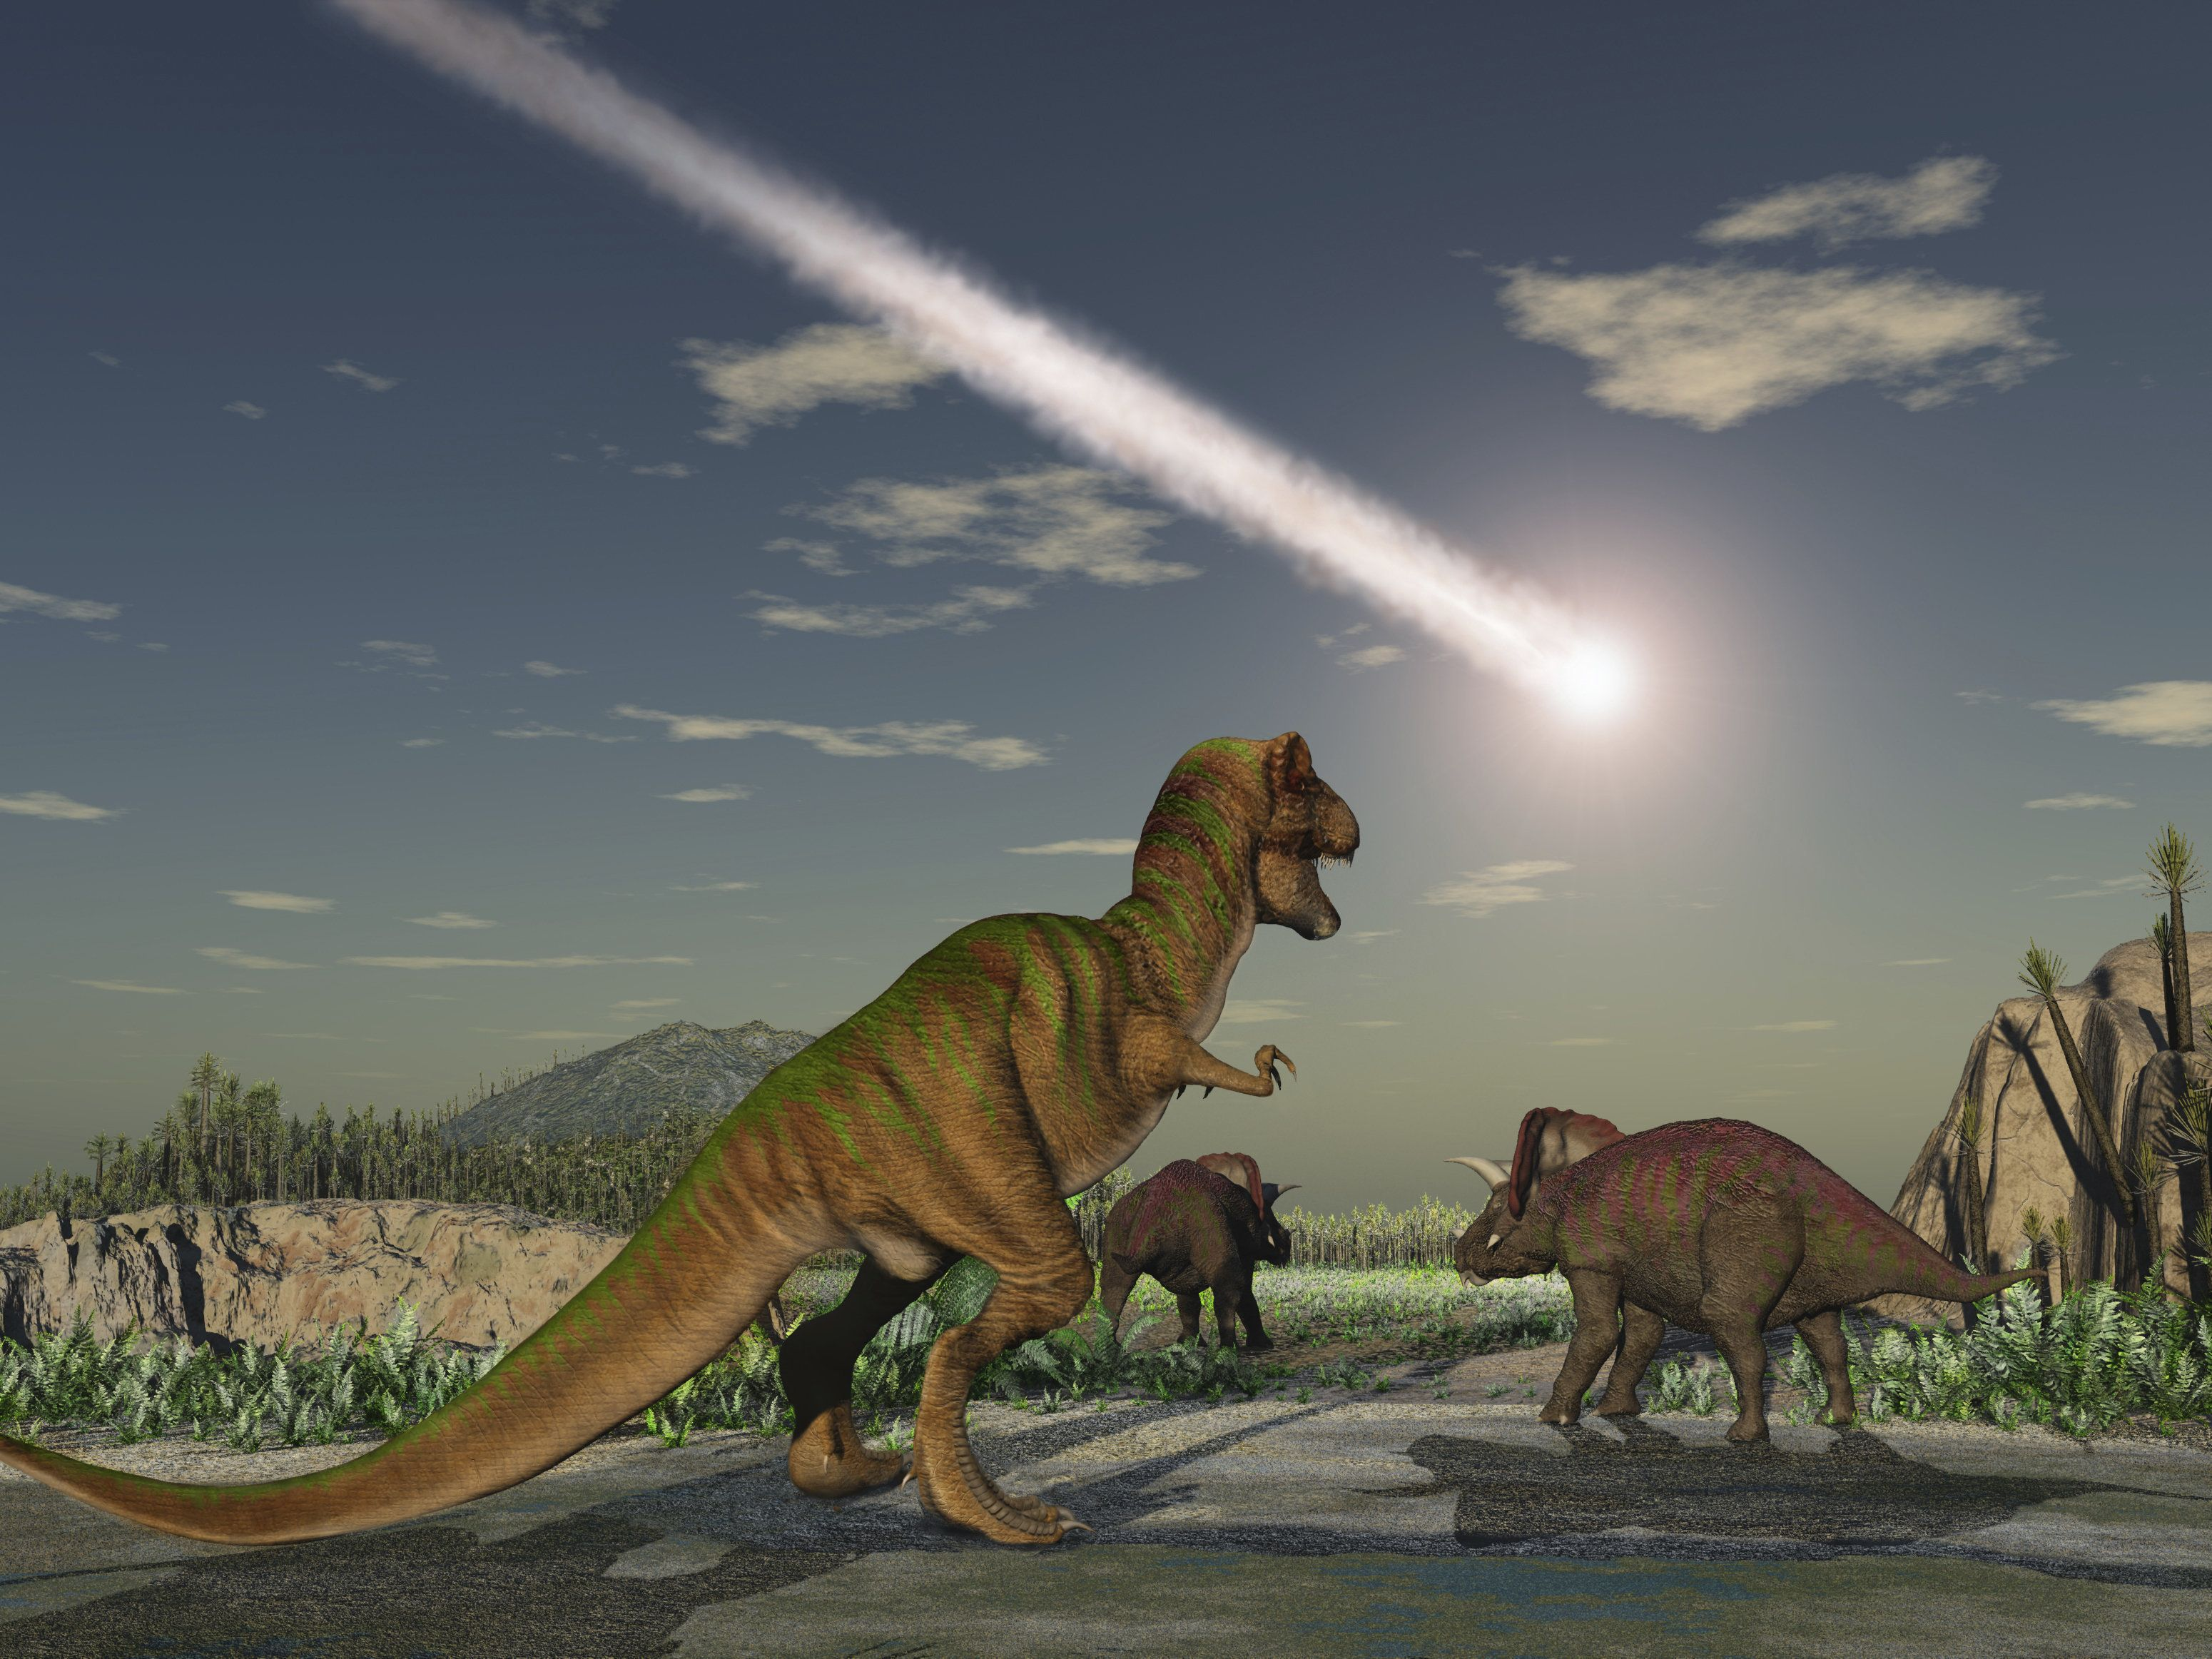 Dinosaurs Could Have Avoided Extinction If The Asteroid Had Landed Anywhere Else On